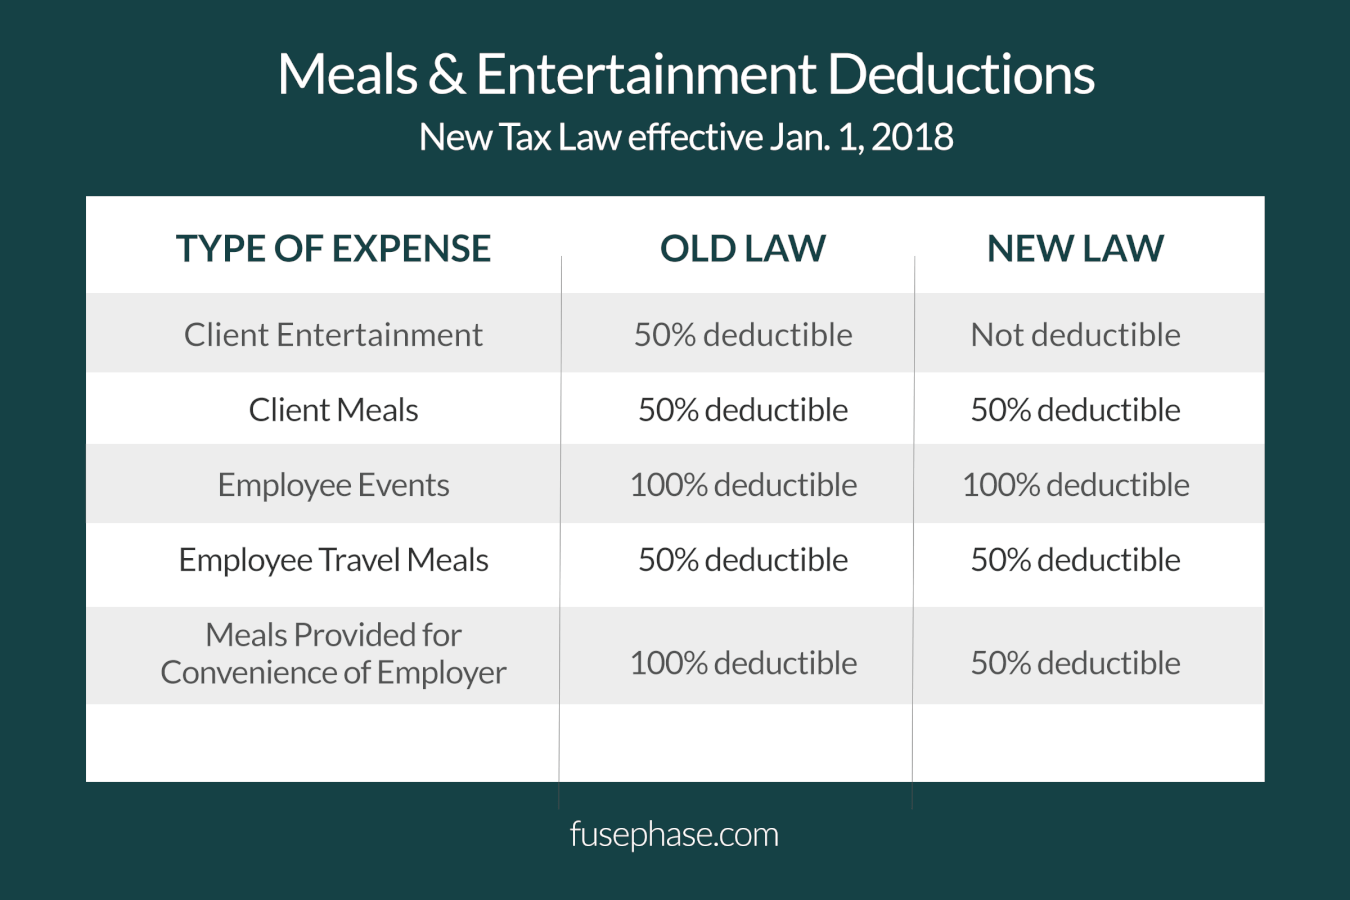 meals and entertainment deductions with new tax law